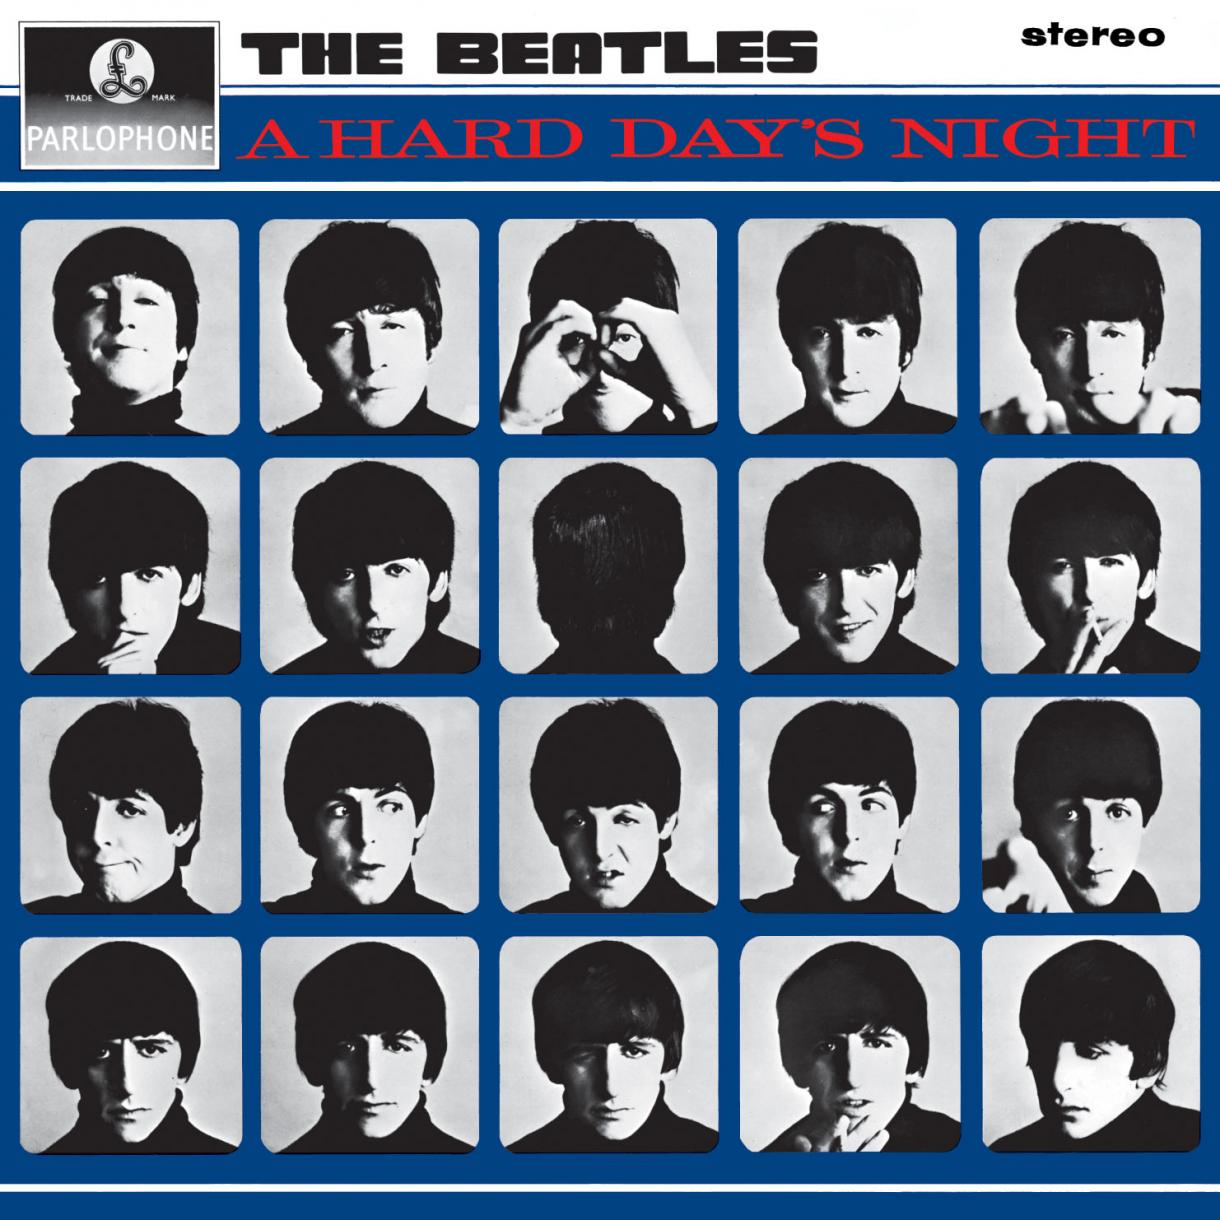 Beatles A Hard Day's Night Album Cover - HD Wallpaper